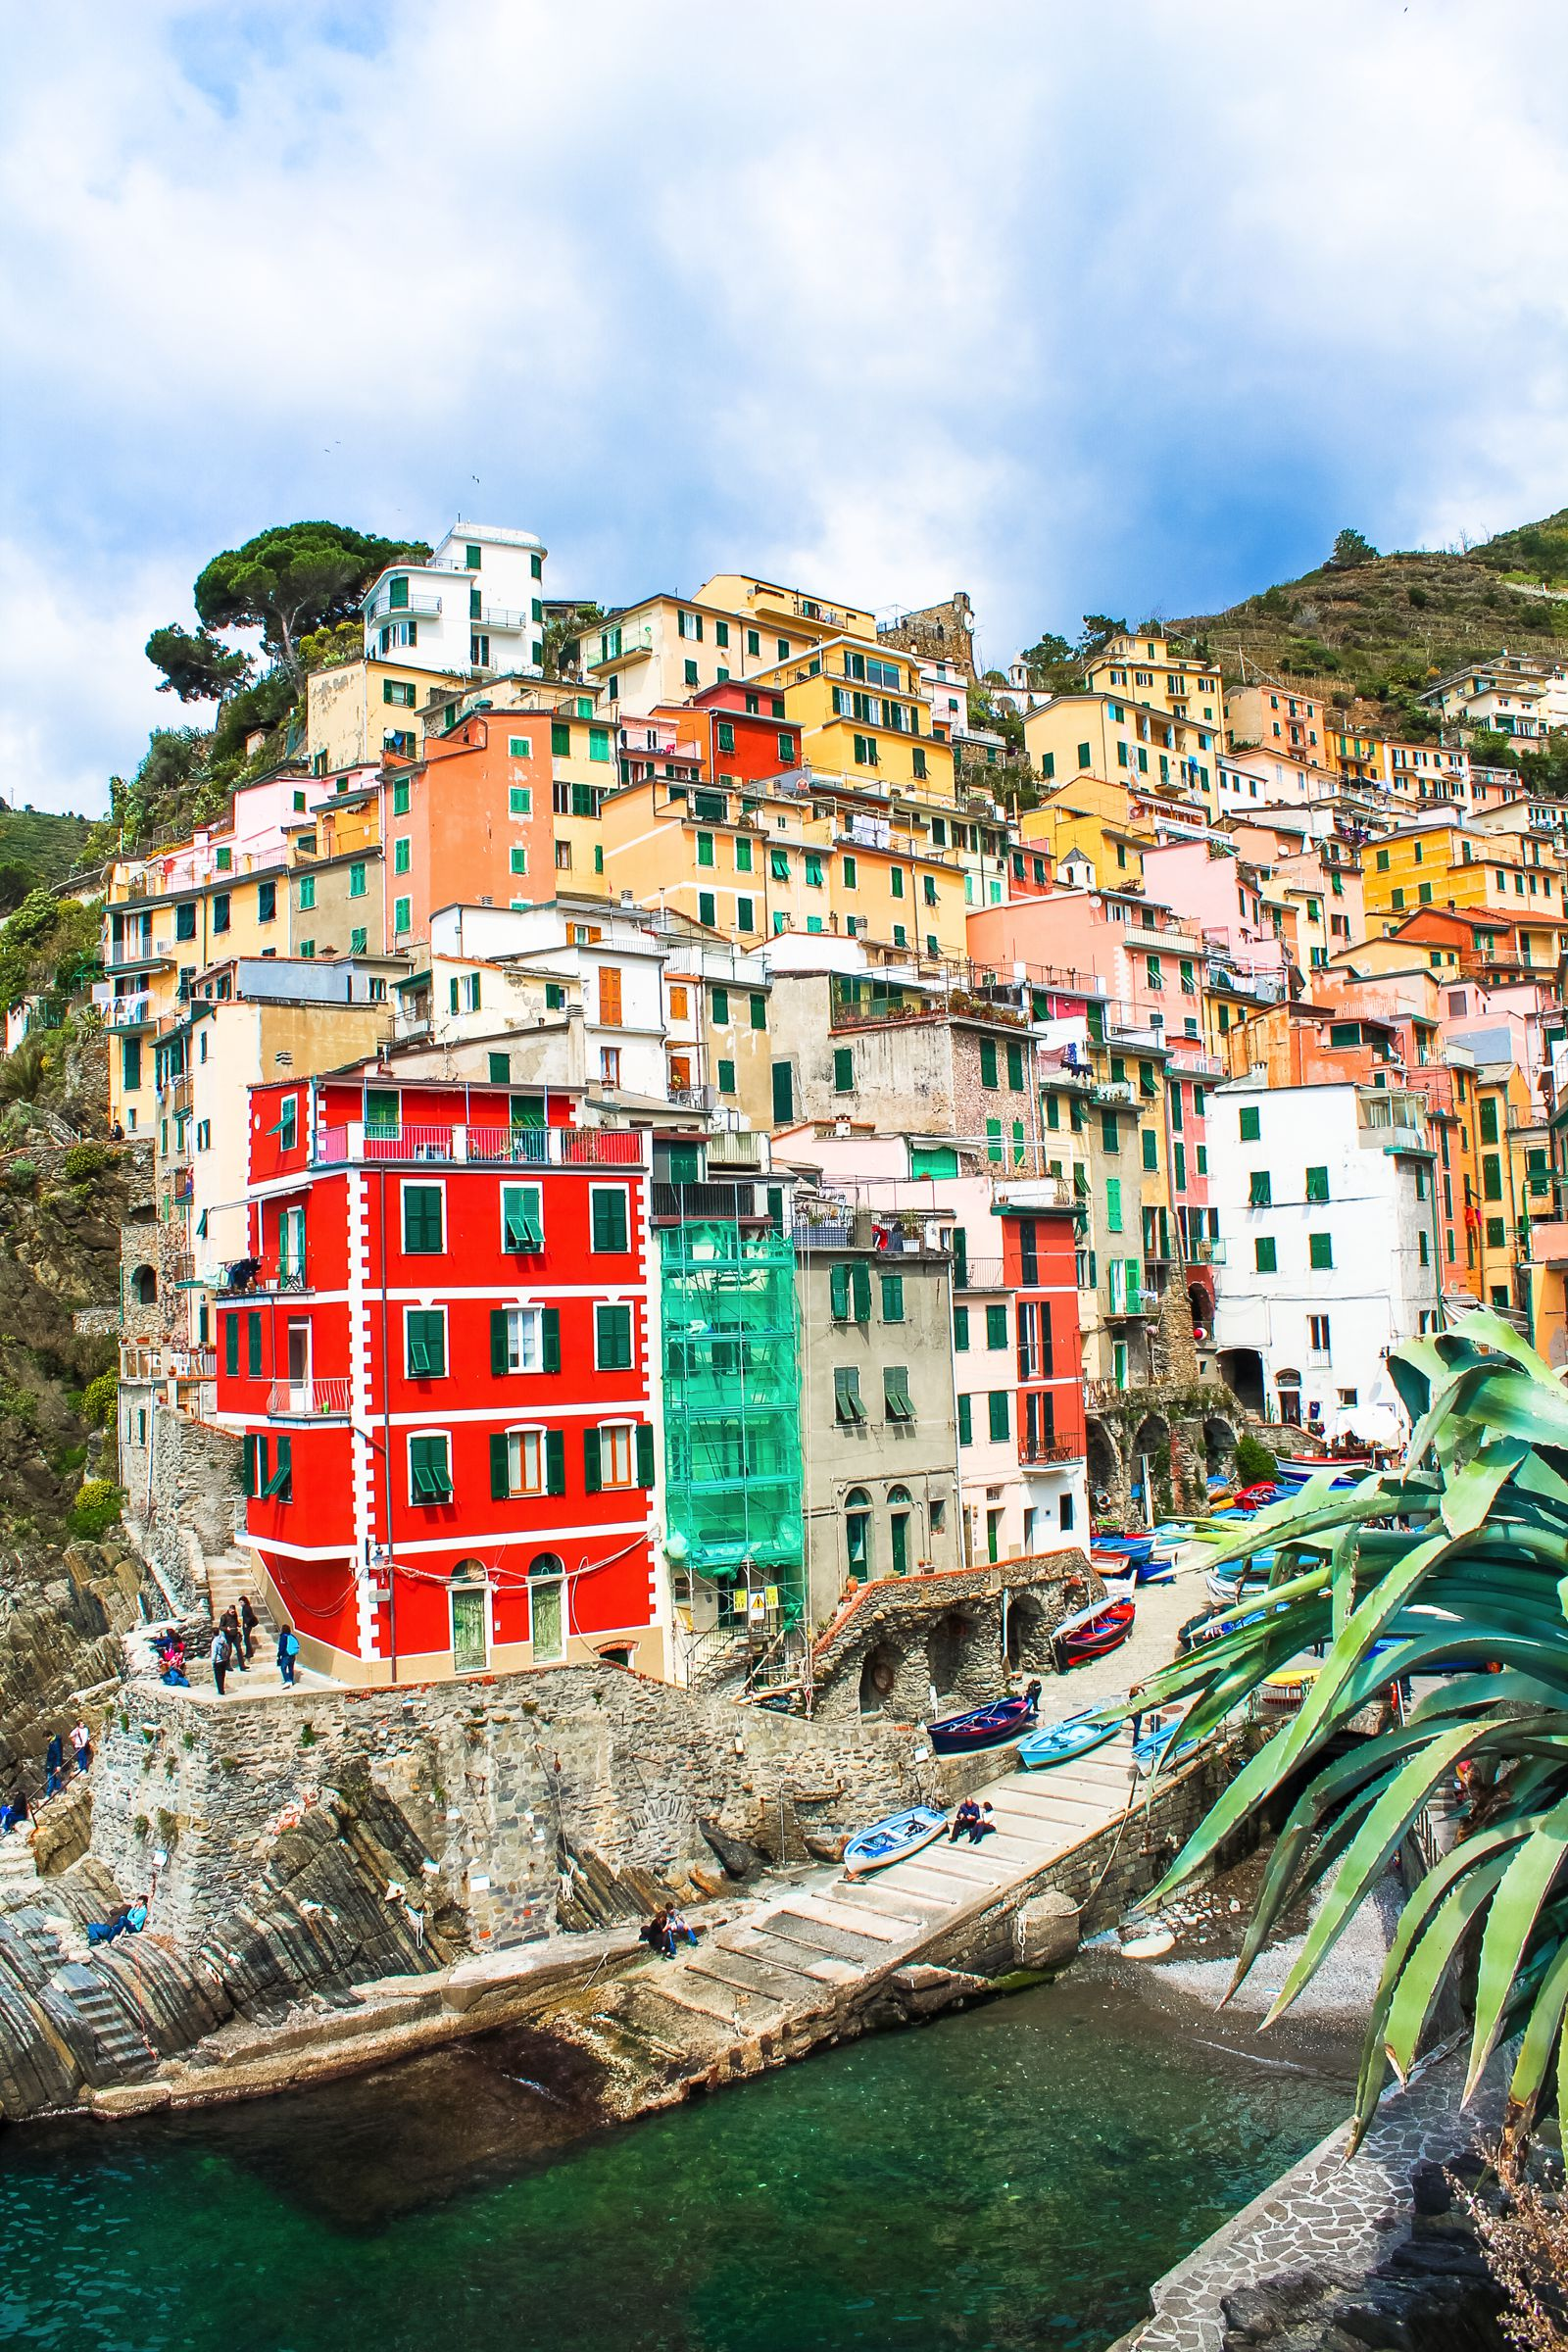 Riomaggiore in Cinque Terre, Italy - The Photo Diary! [1 of 5] (4)